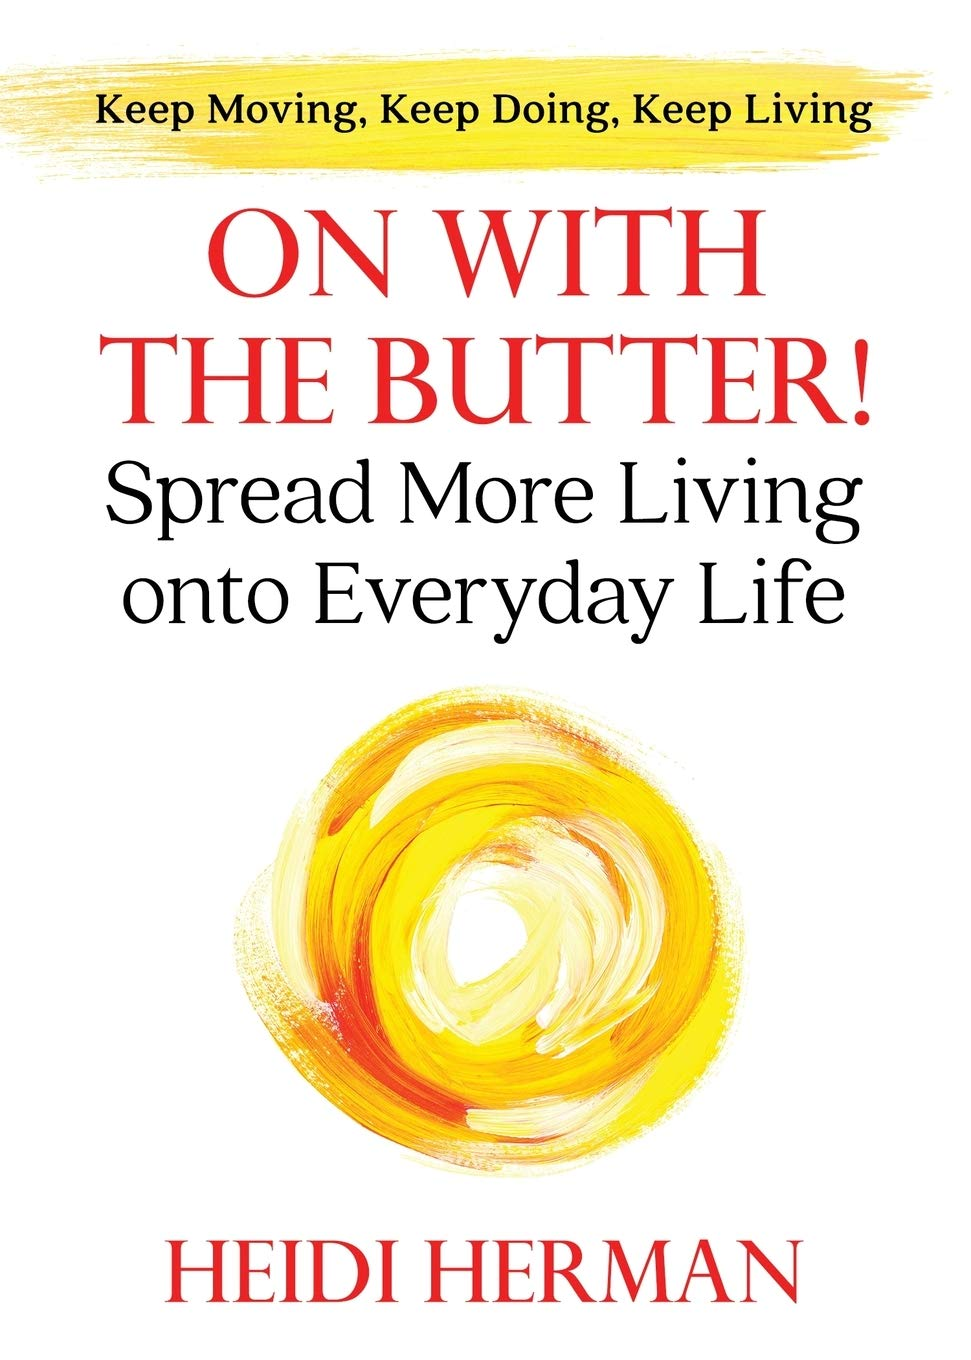 On With The Butter Spread More Living Onto Everyday Life Herman Heidi 9781947233034 Amazon Com Books